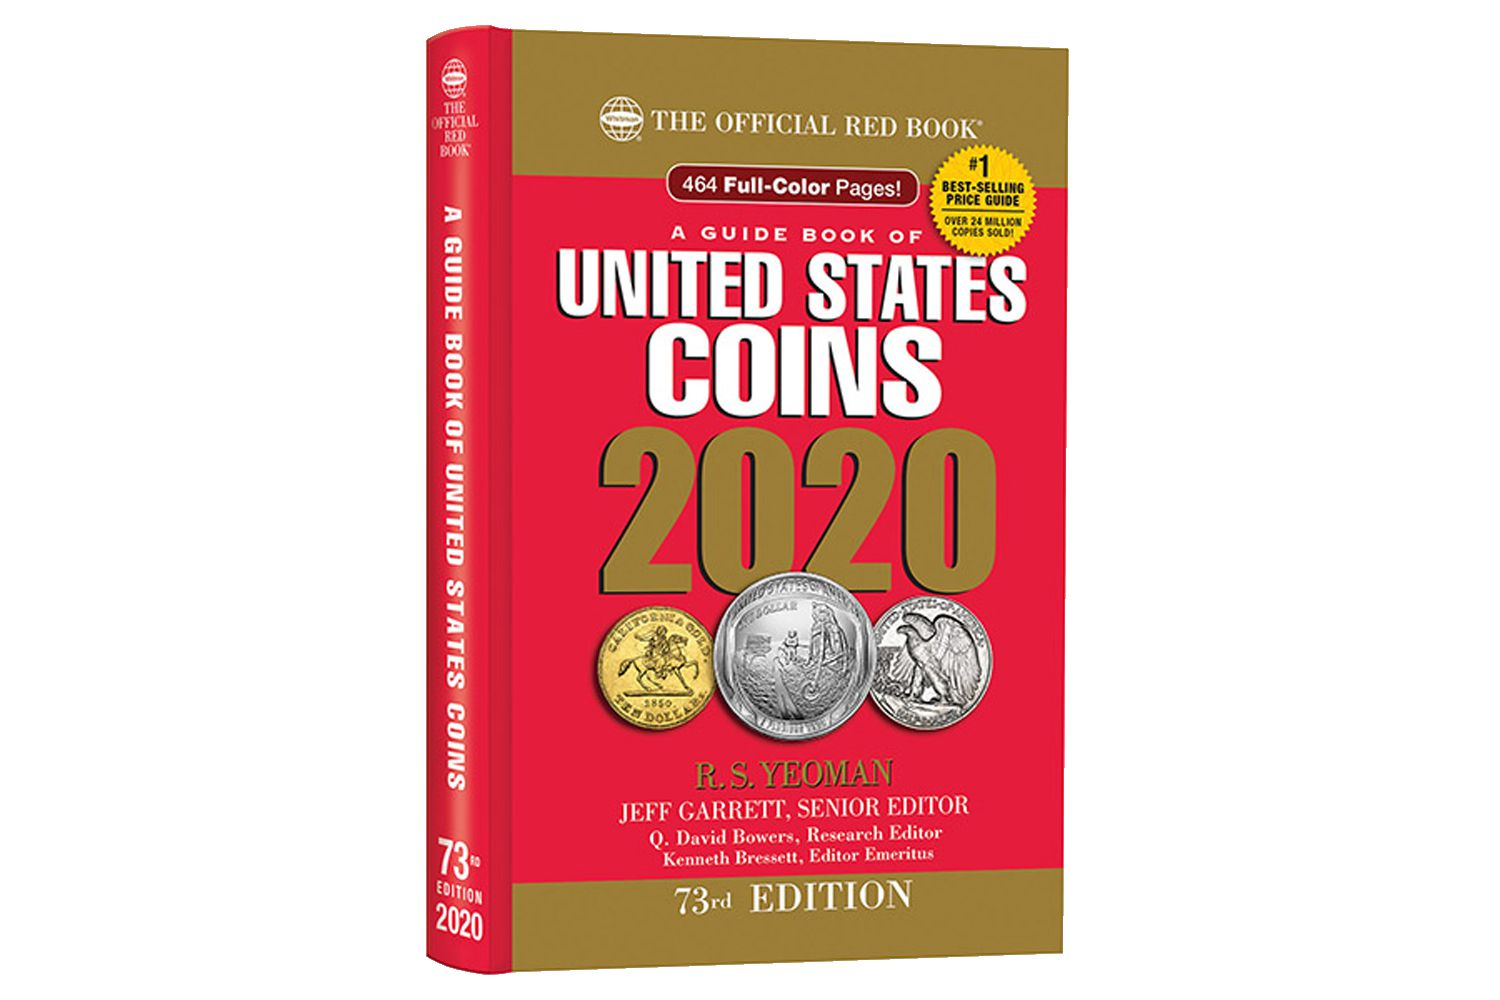 A Guide Book of United States Coins 2020 by RS Yeoman